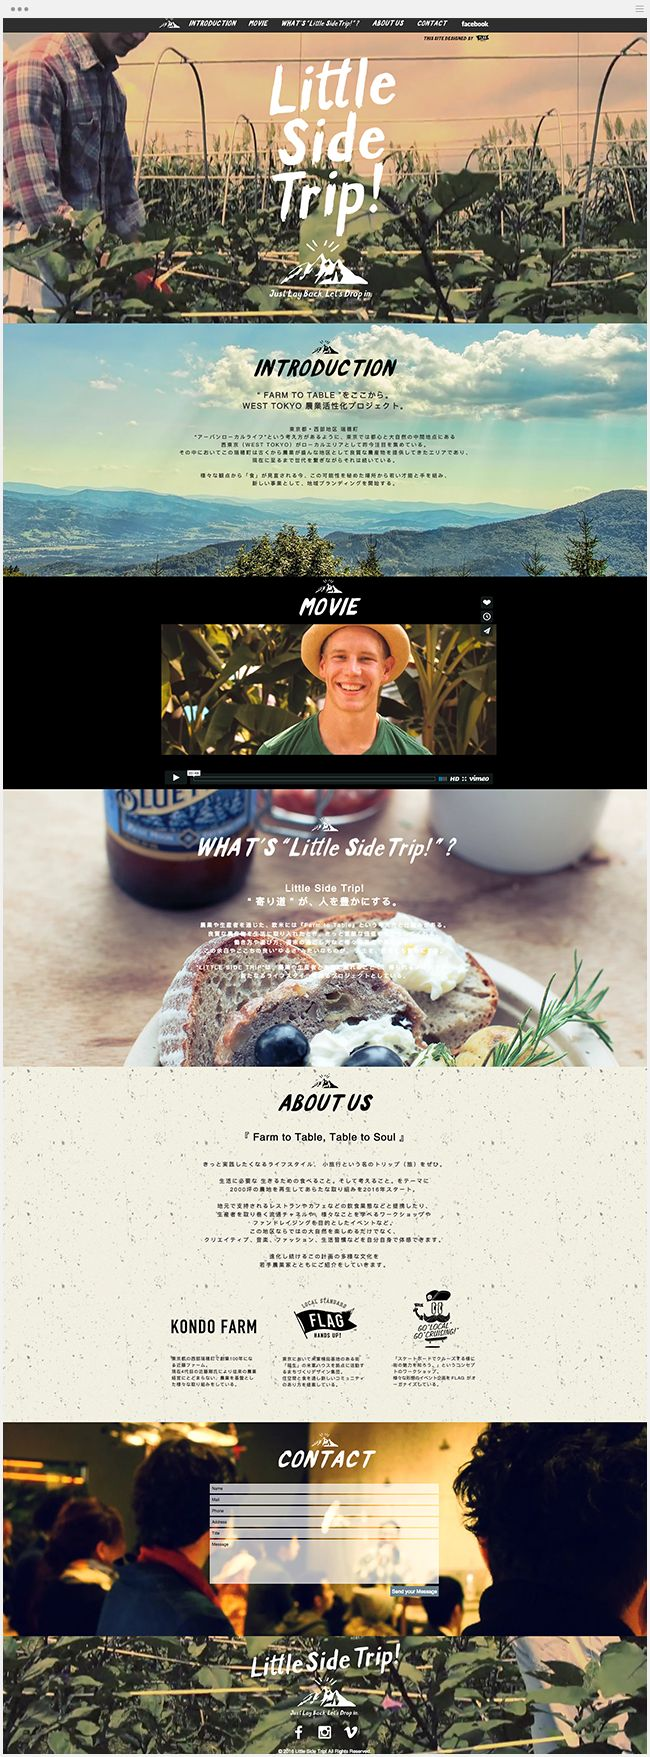 Little Side Trip | Event Planning Group